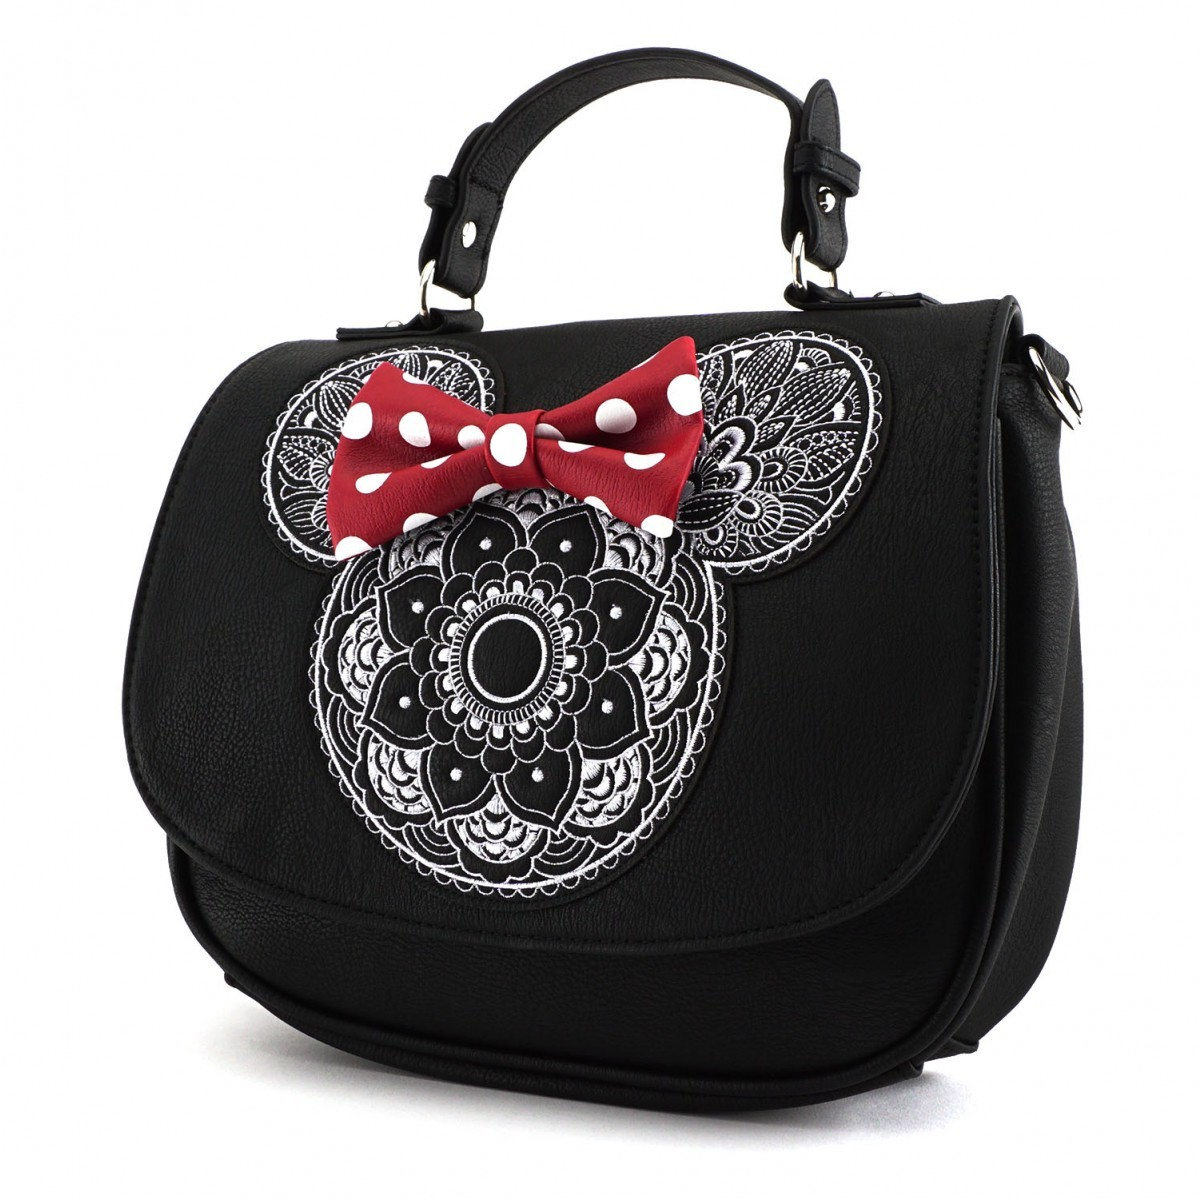 22ea6ebadfc4 Disney Minnie Mouse Mandala Crossbody Bag | Women's | at Mighty Ape ...